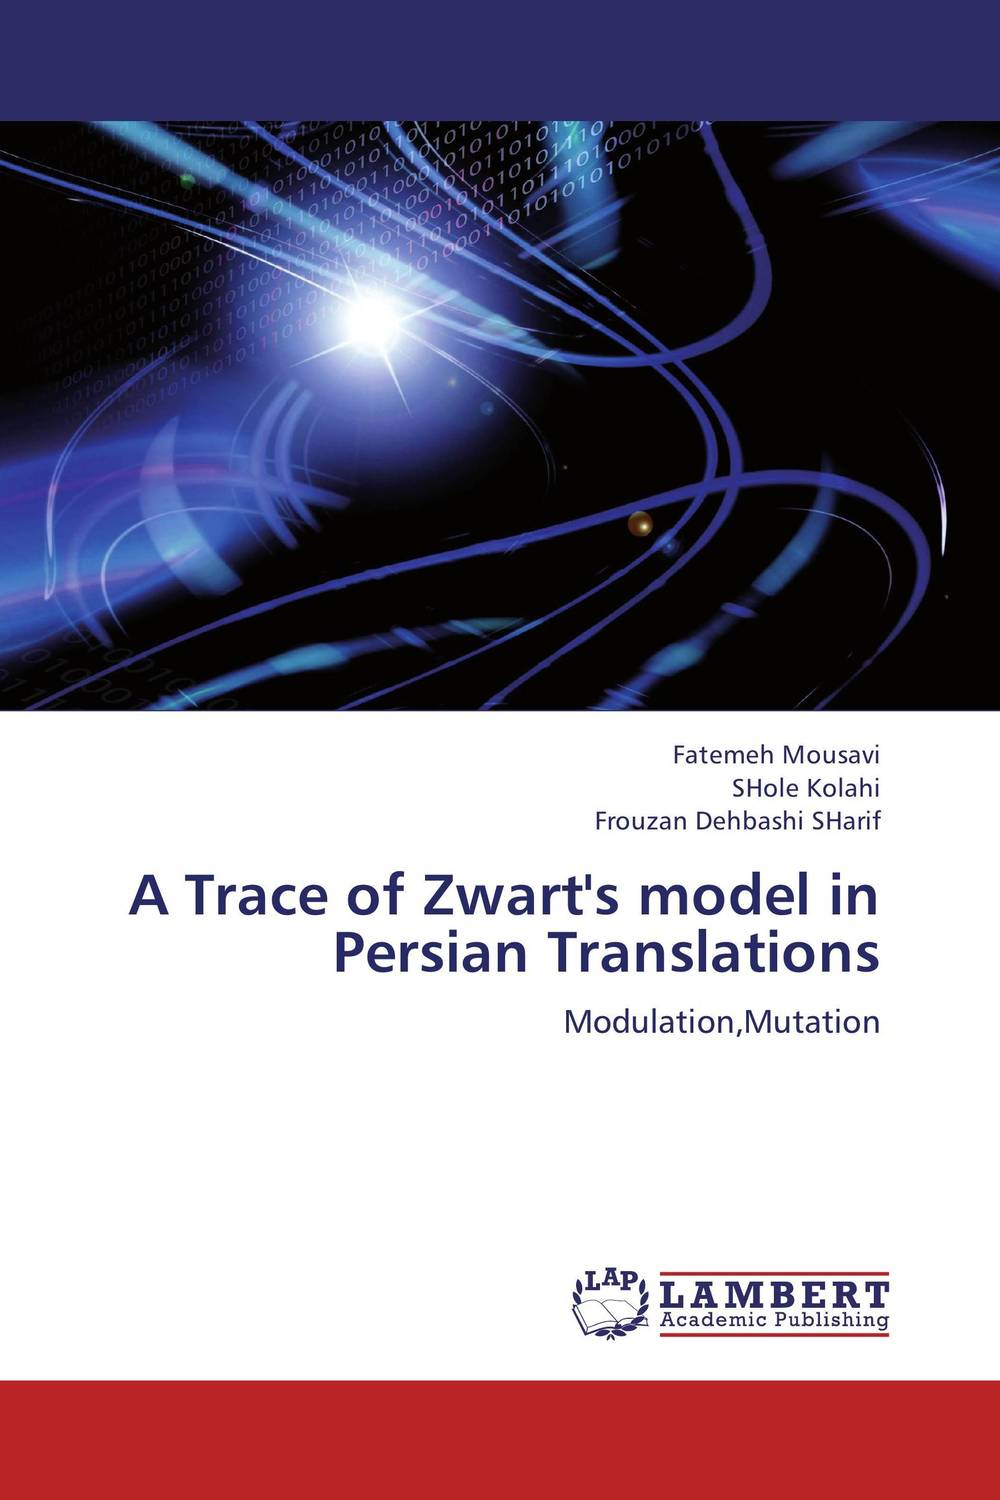 A Trace of Zwart's model in Persian Translations